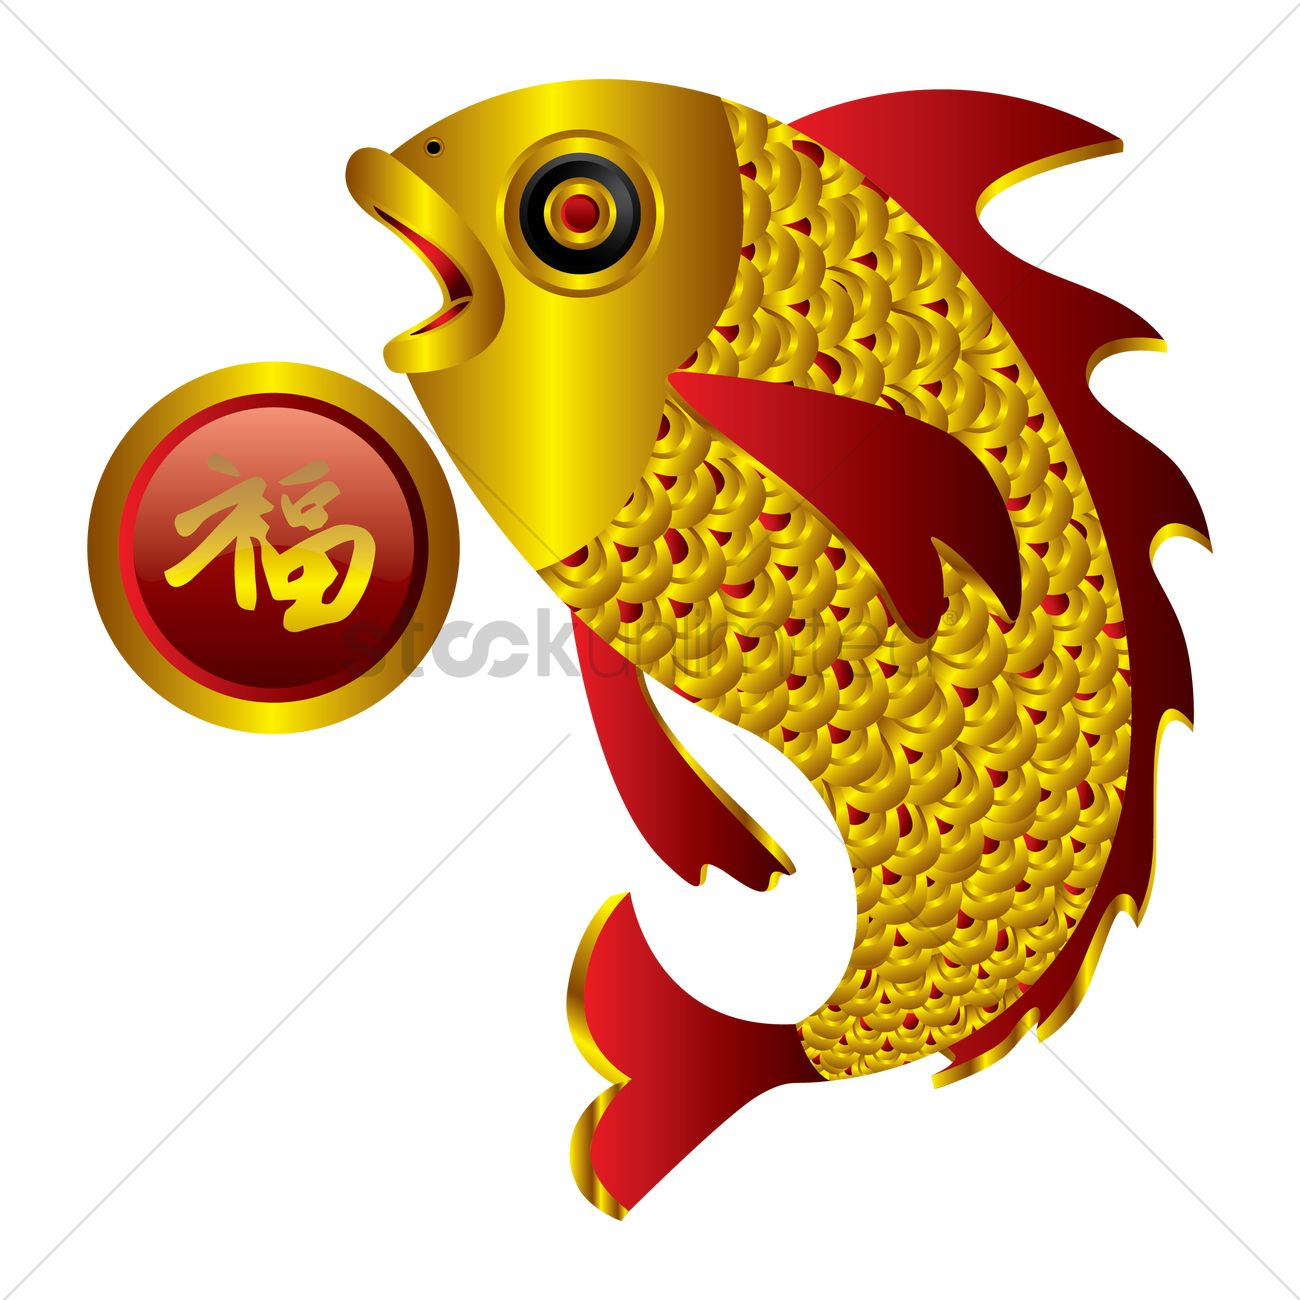 Chinese New Year Fish Greeting Card Design Vector Image 1407710